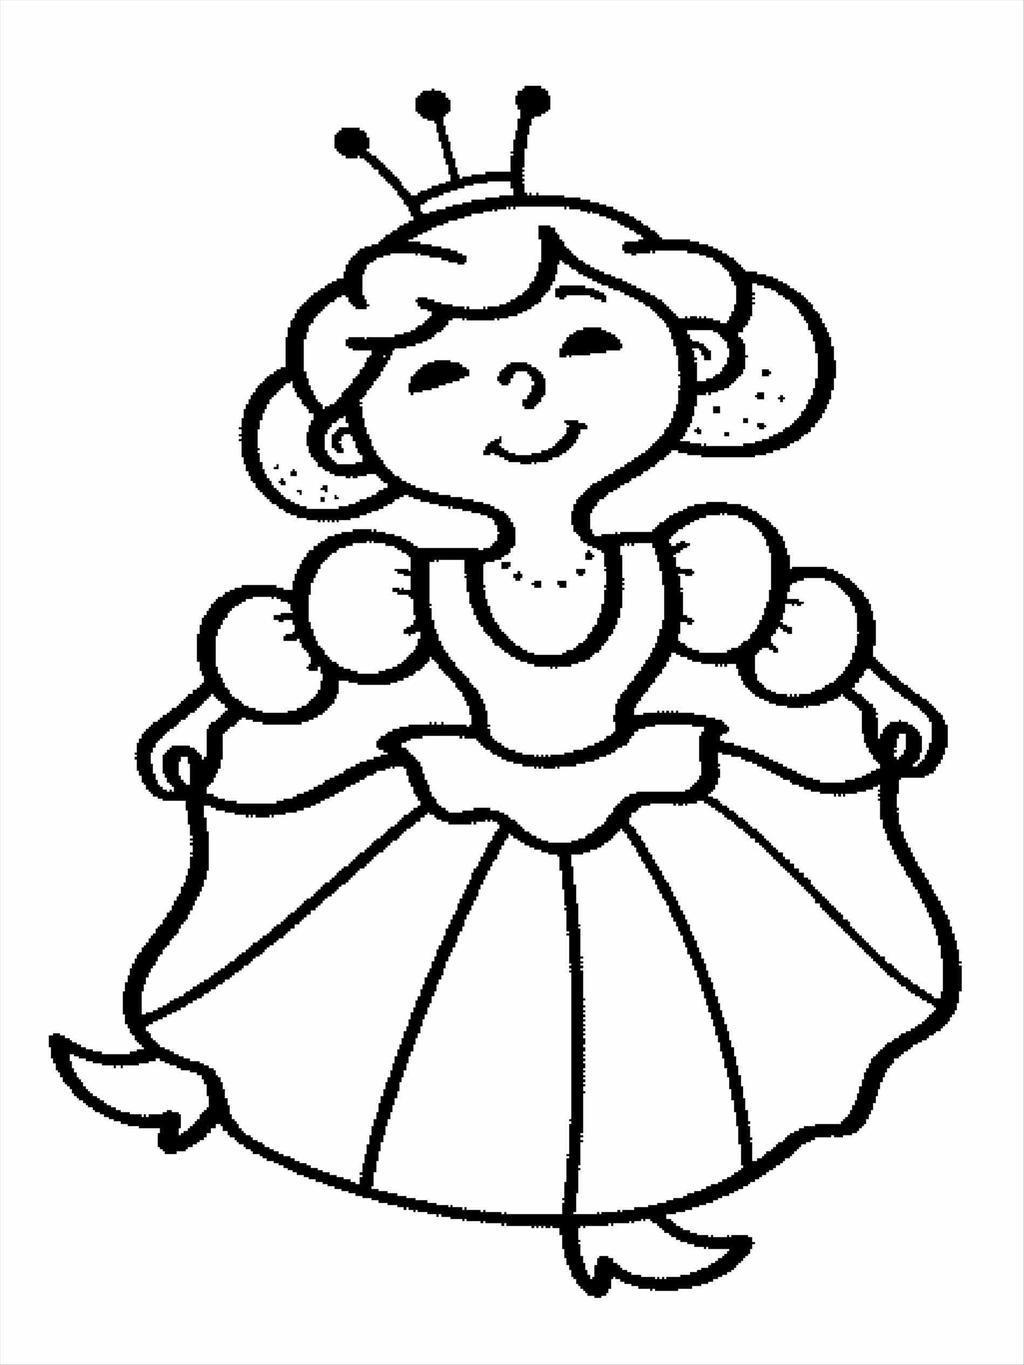 Romero Britto Coloring Pages Ice Queen - Free Printable Coloring Pages